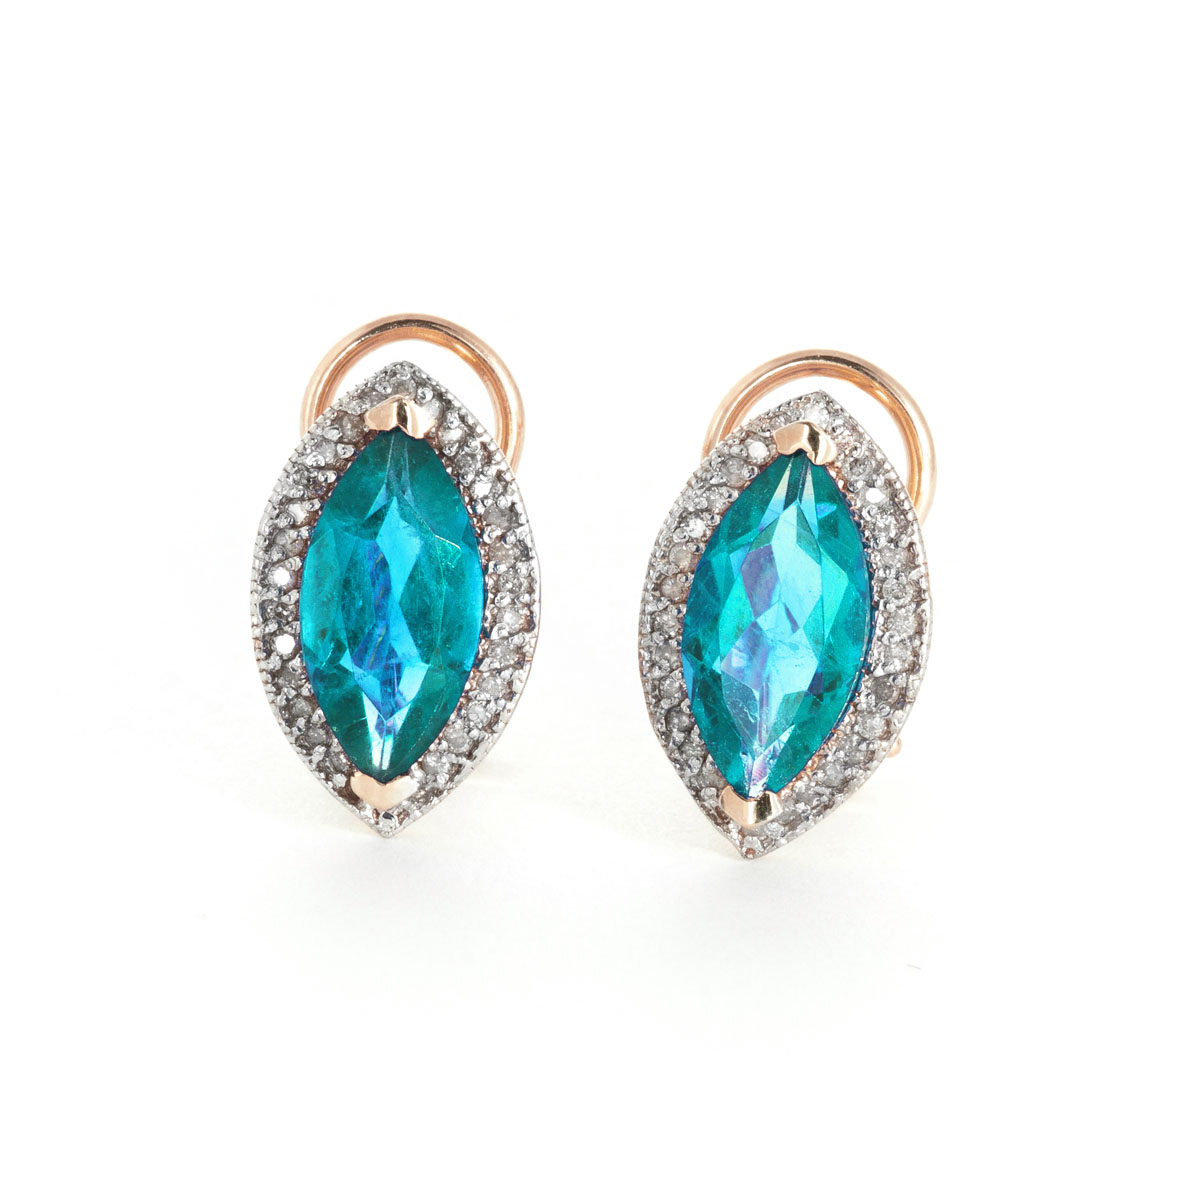 Blue Topaz French Clip Halo Earrings 4.8 ctw in 9ct Rose Gold